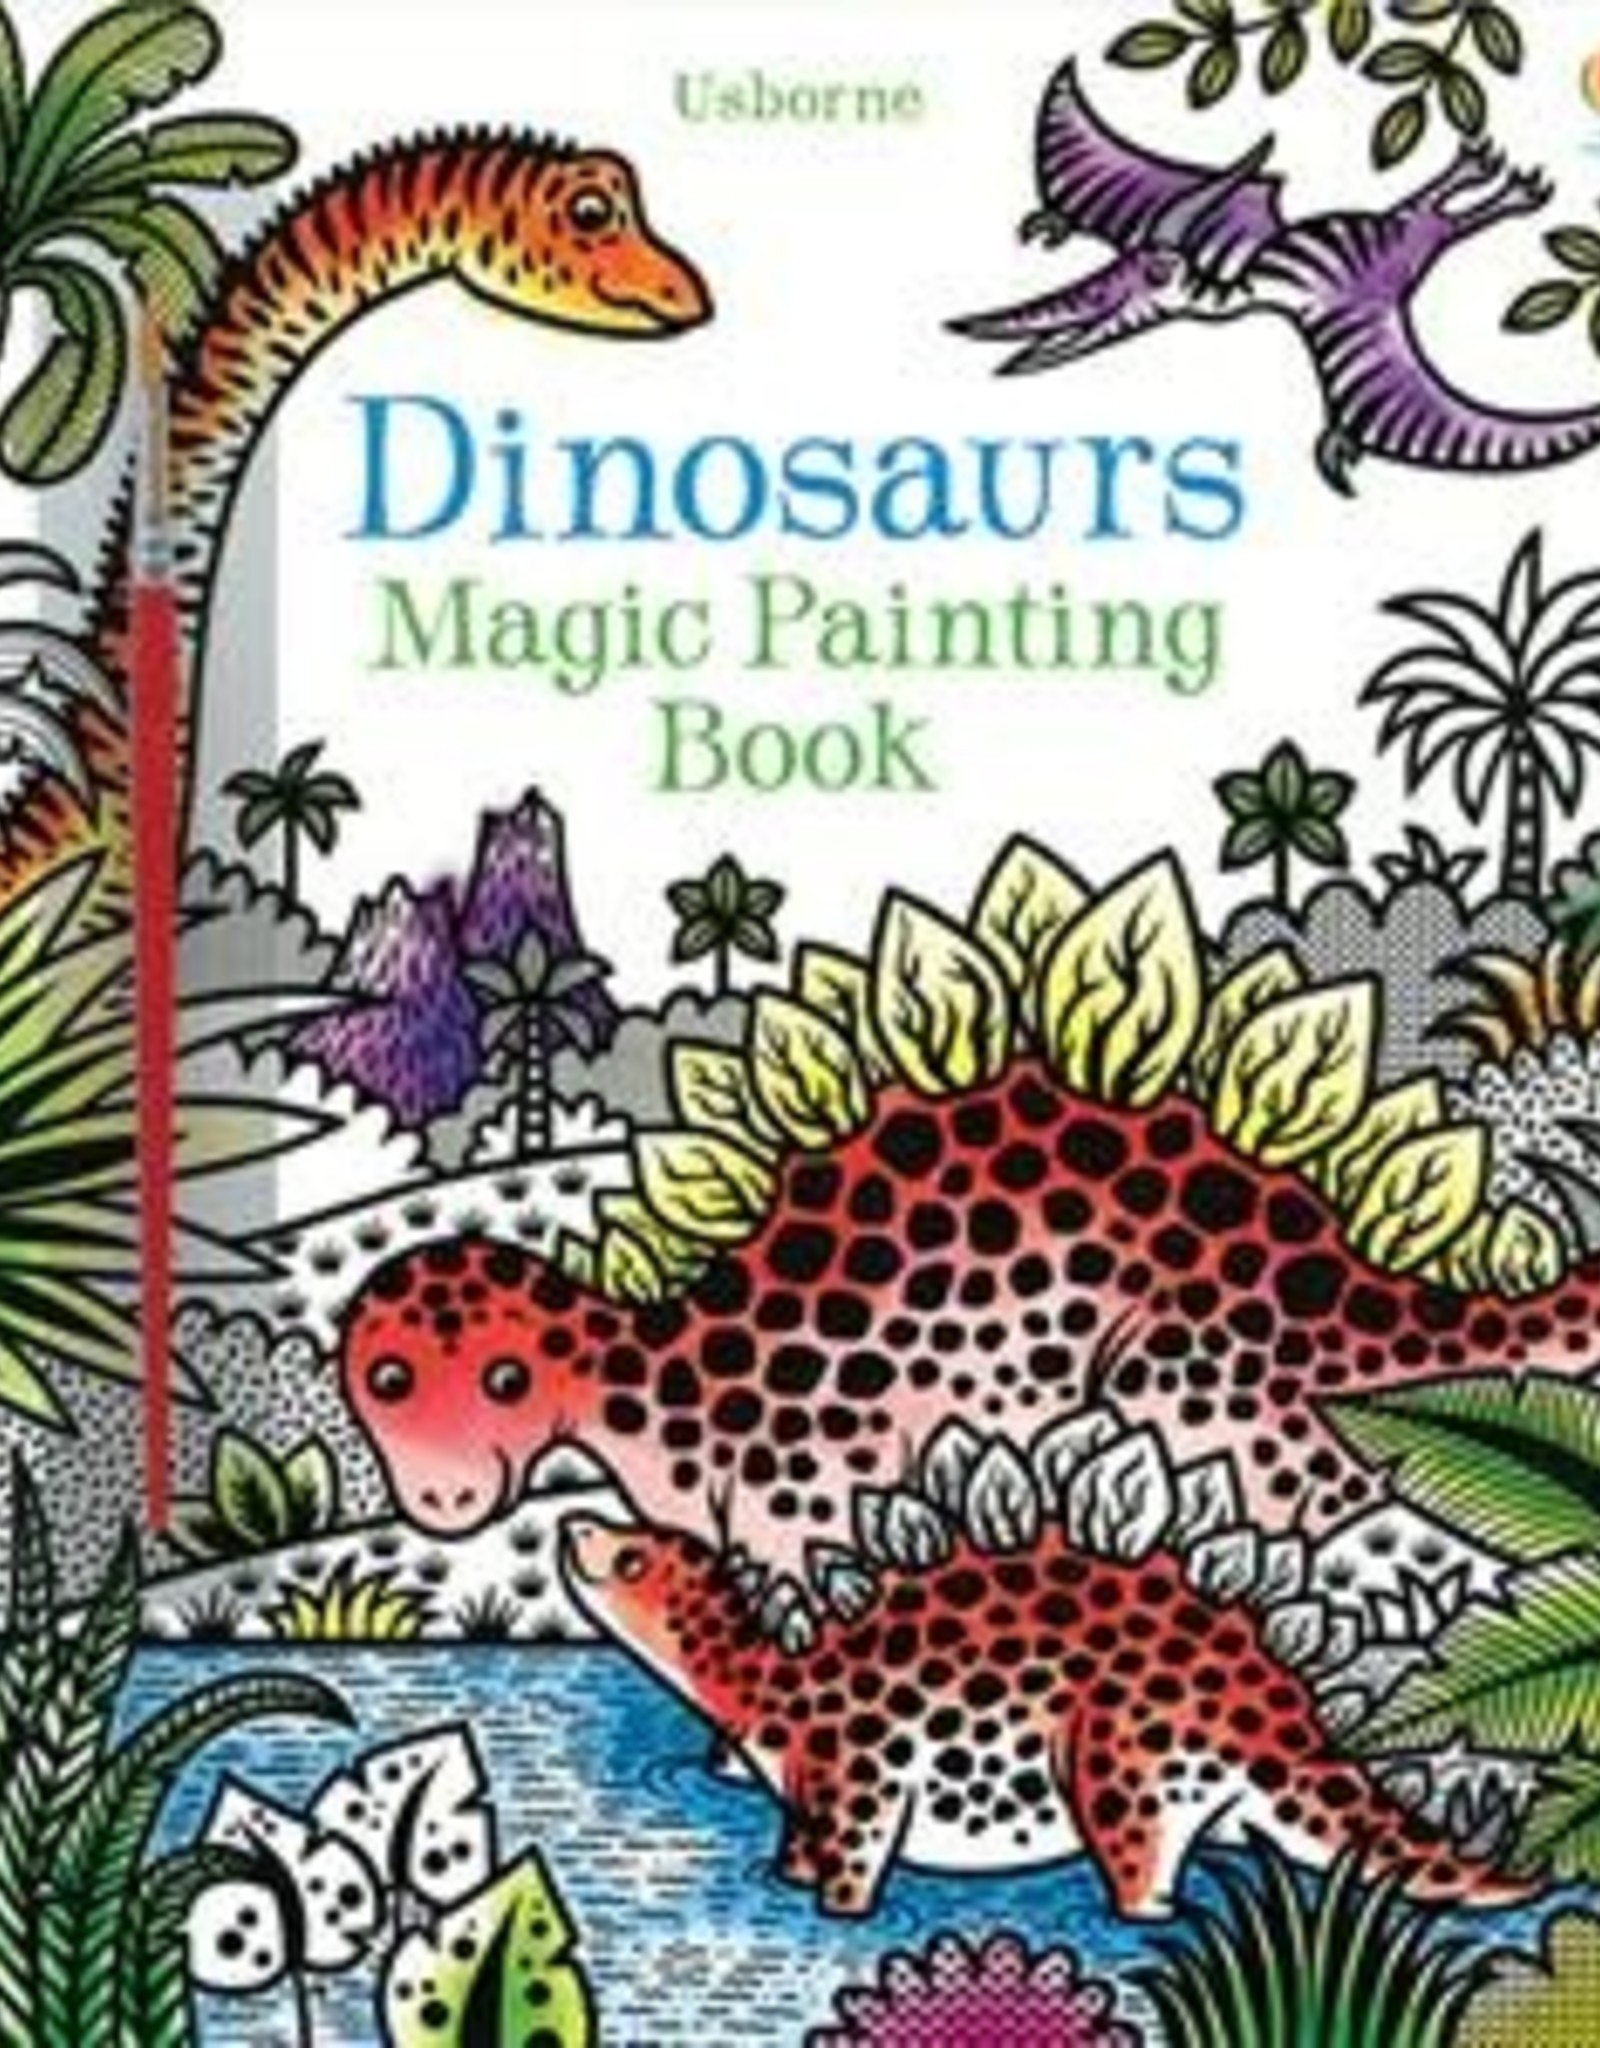 Usborne Magic Painting Book Dinosaurs